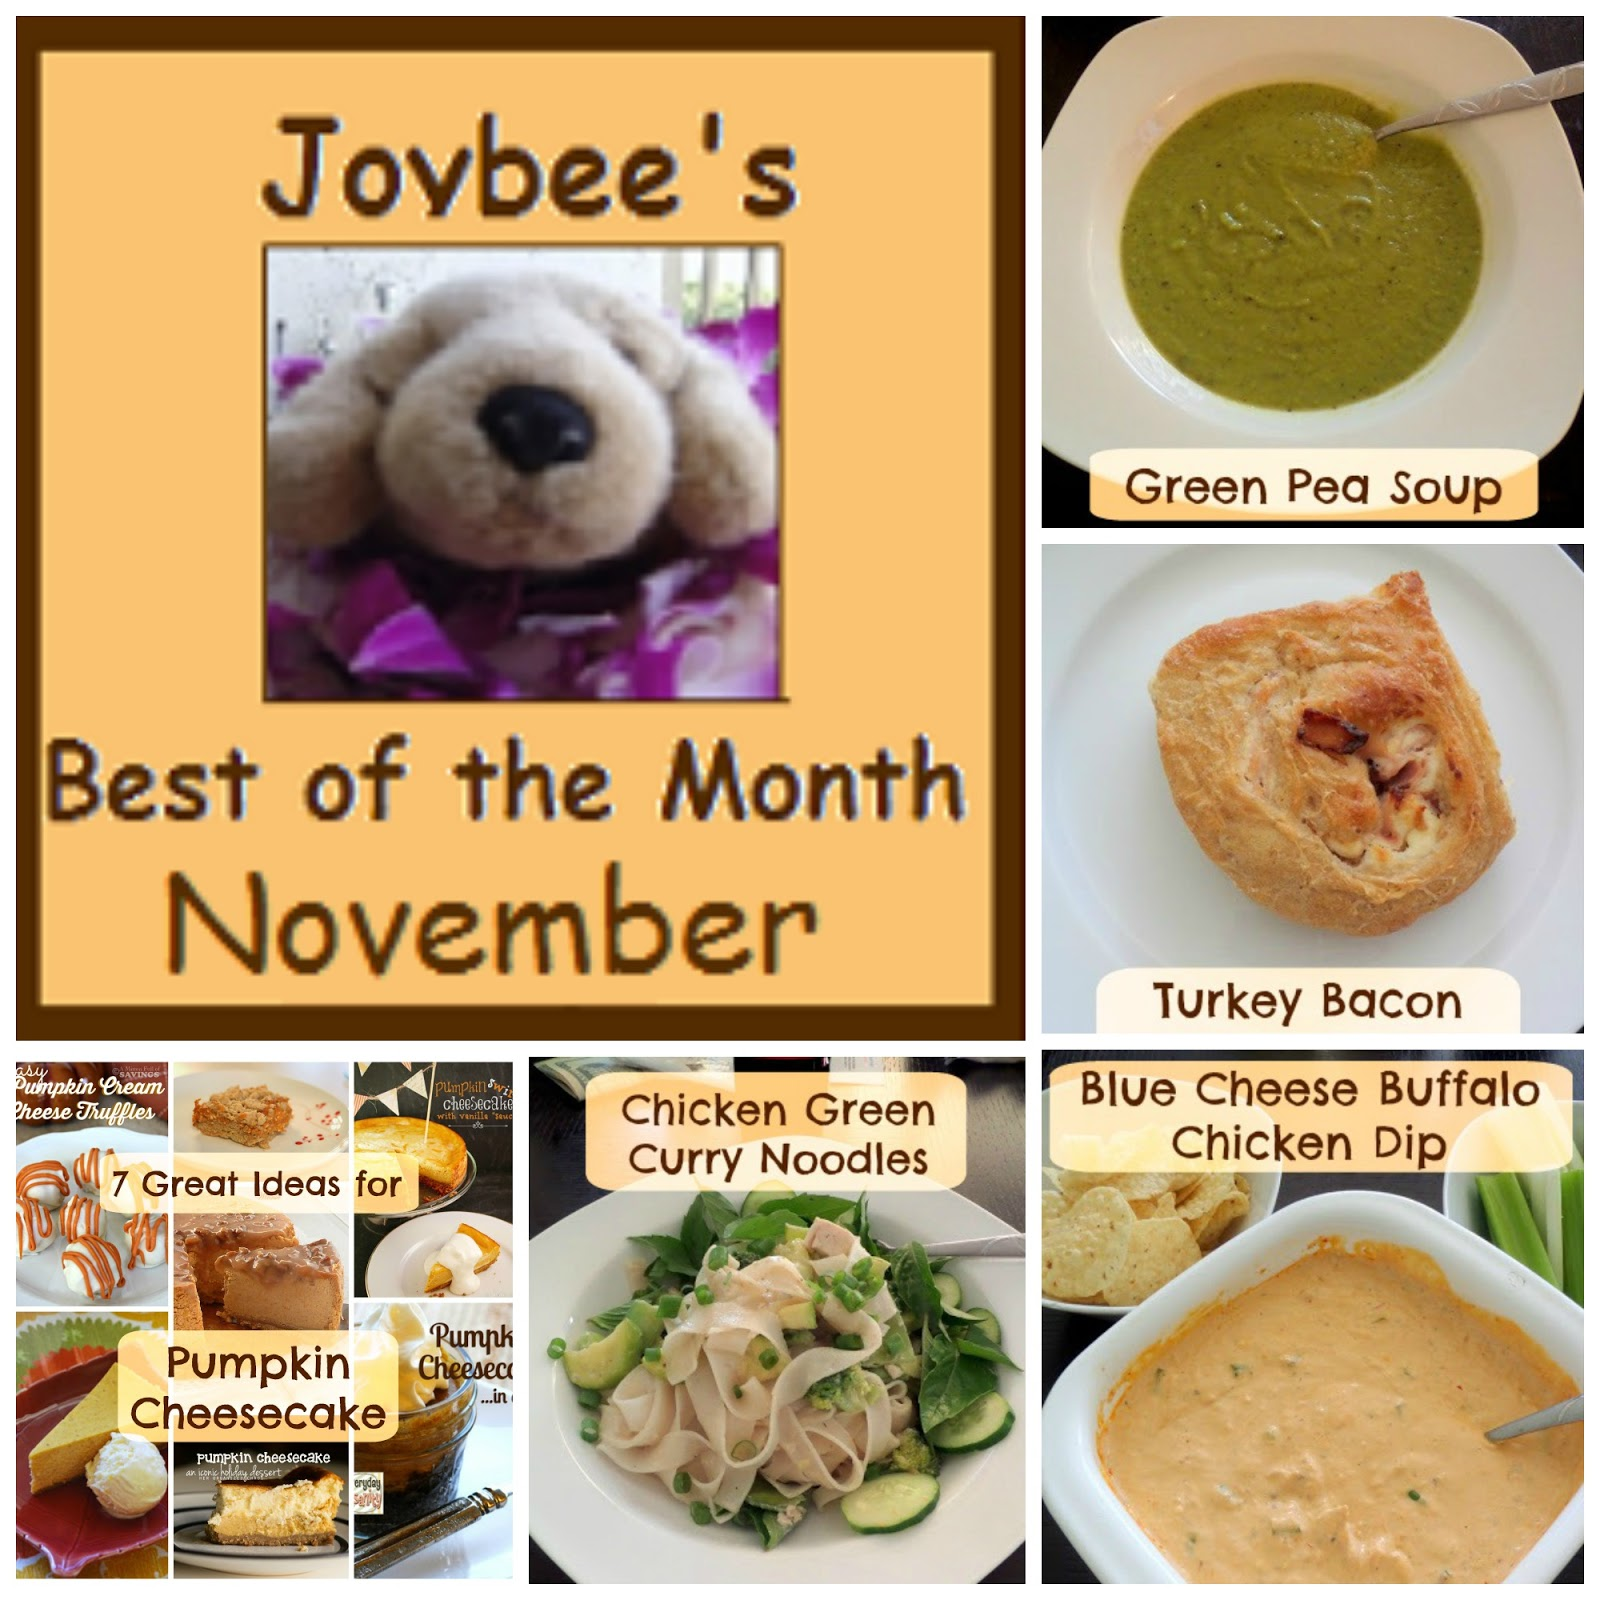 Best of the Month November 2014:  A recap of my most popular posts from November 2014.